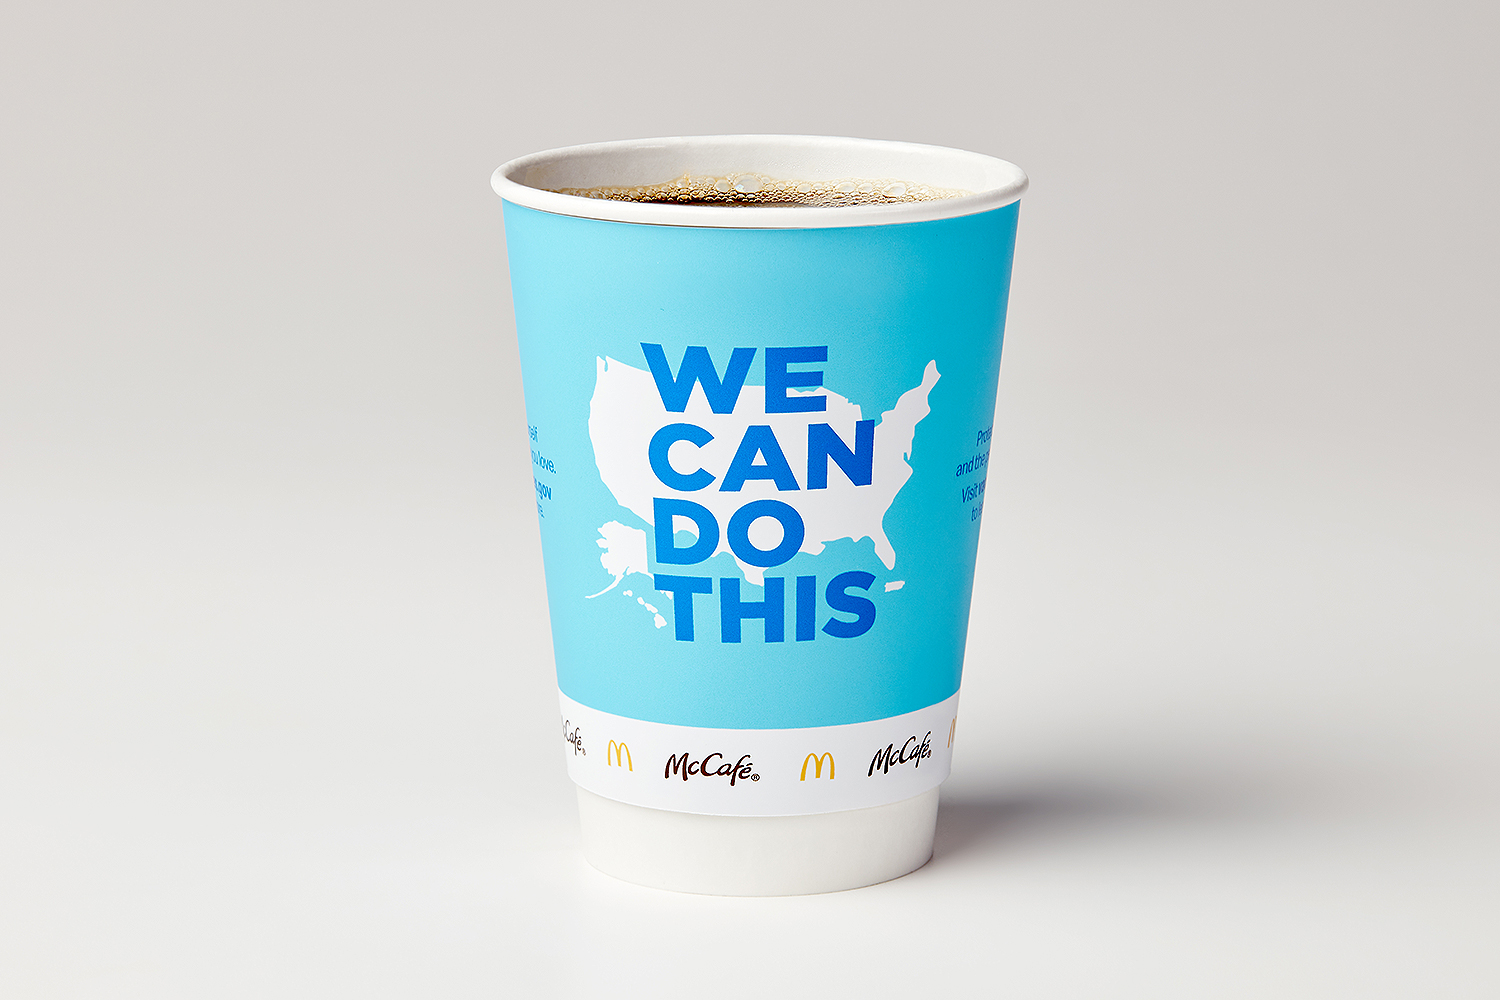 McDonald's Partners with White House to Promote Vaccine Awareness Through New Cups, Billboards